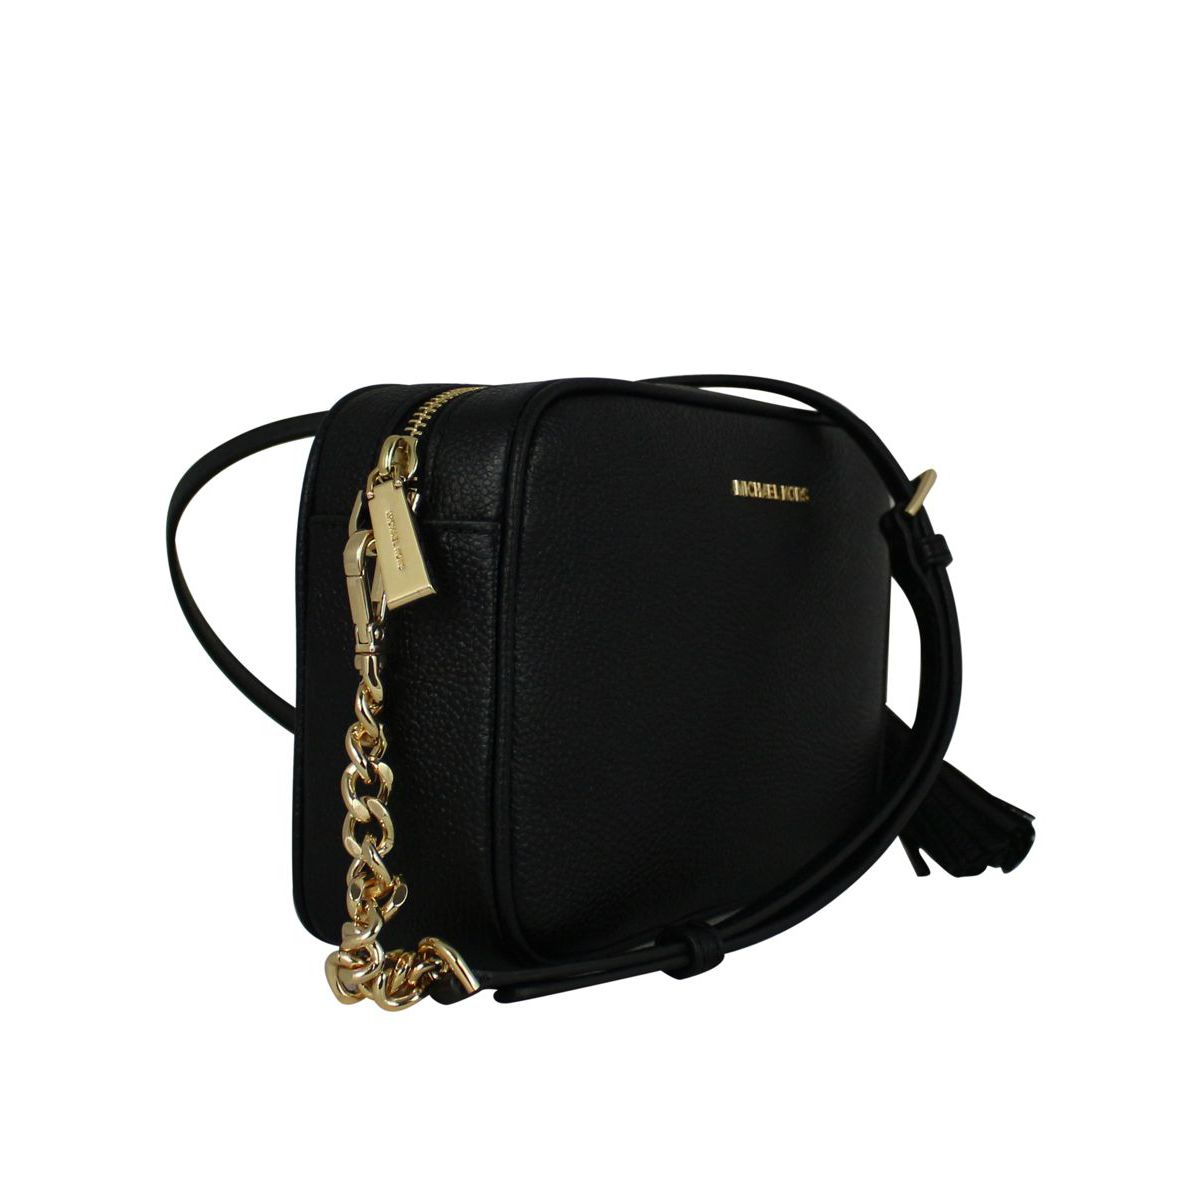 Ginny shoulder bag in leather Black Michael Kors